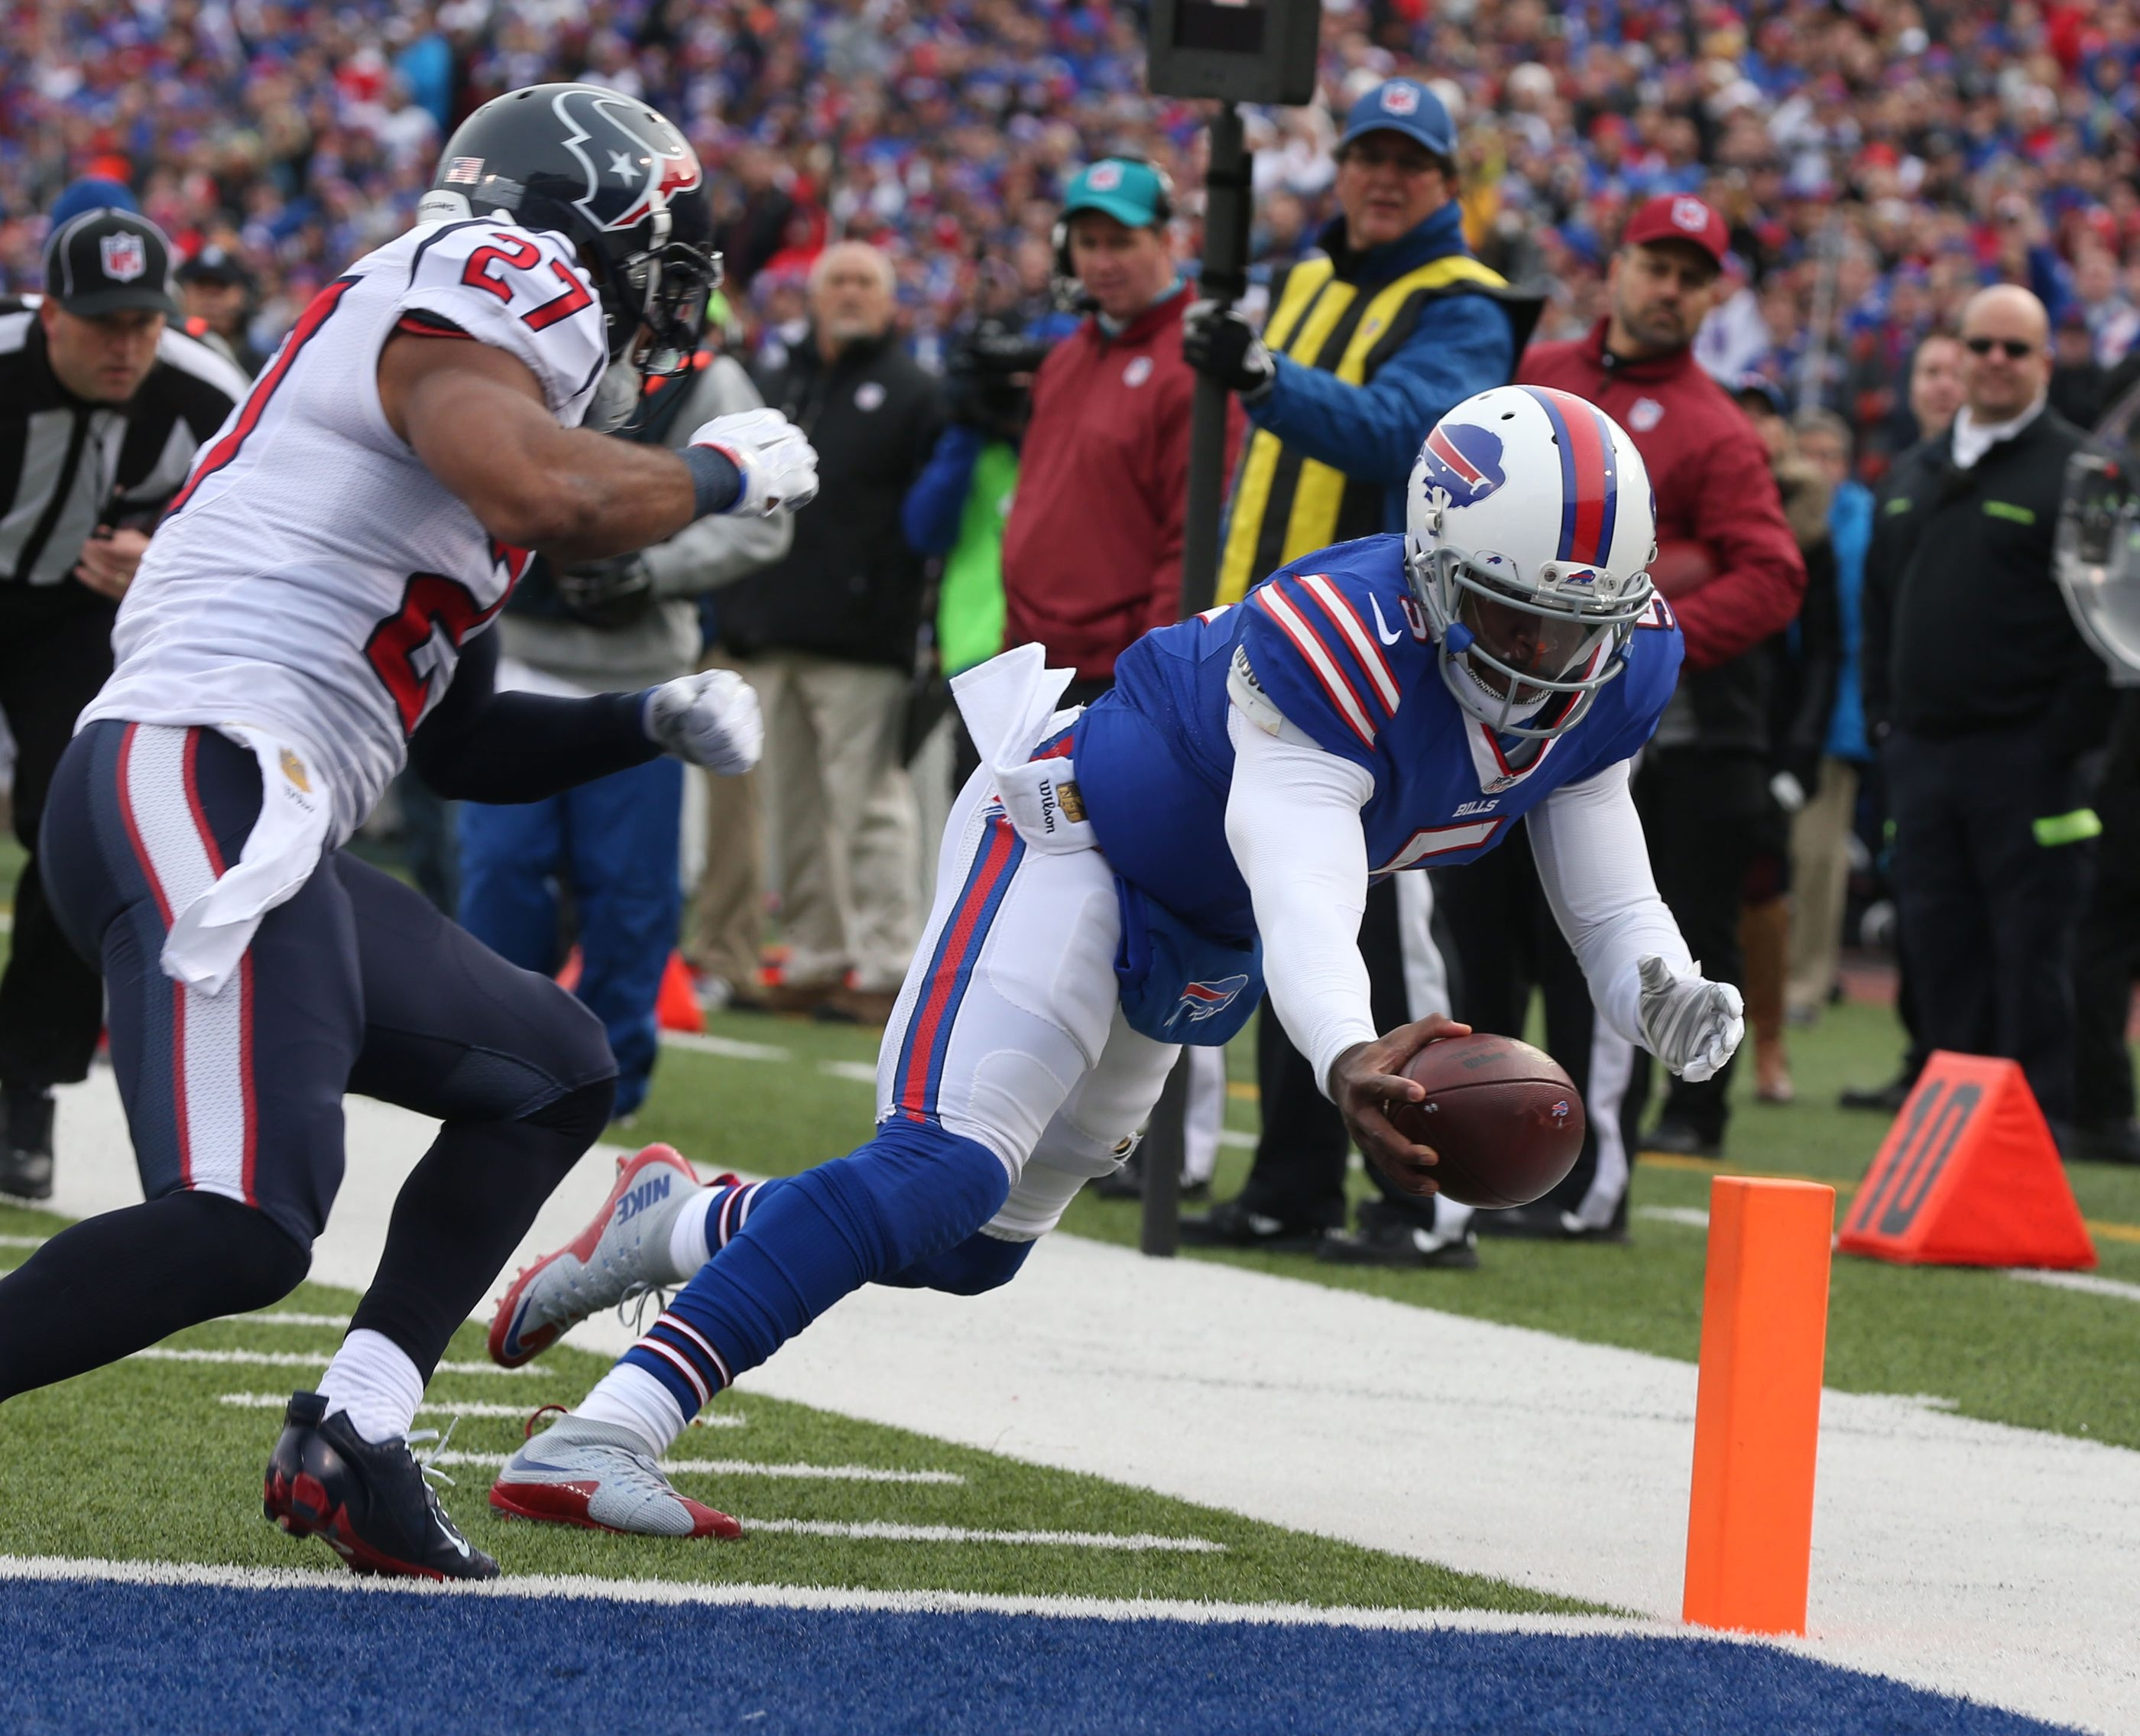 Buffalo Bills quarterback Tyrod Taylor (5) dives into the end zone for a touchdown under pressure from Houston Texans safety Quintin Demps (27) during the second quarter at Ralph Wilson Stadium in Orchard Park, N.Y. on Sunday, Dec. 6, 2015.  (James P. McCoy/ Buffalo News)